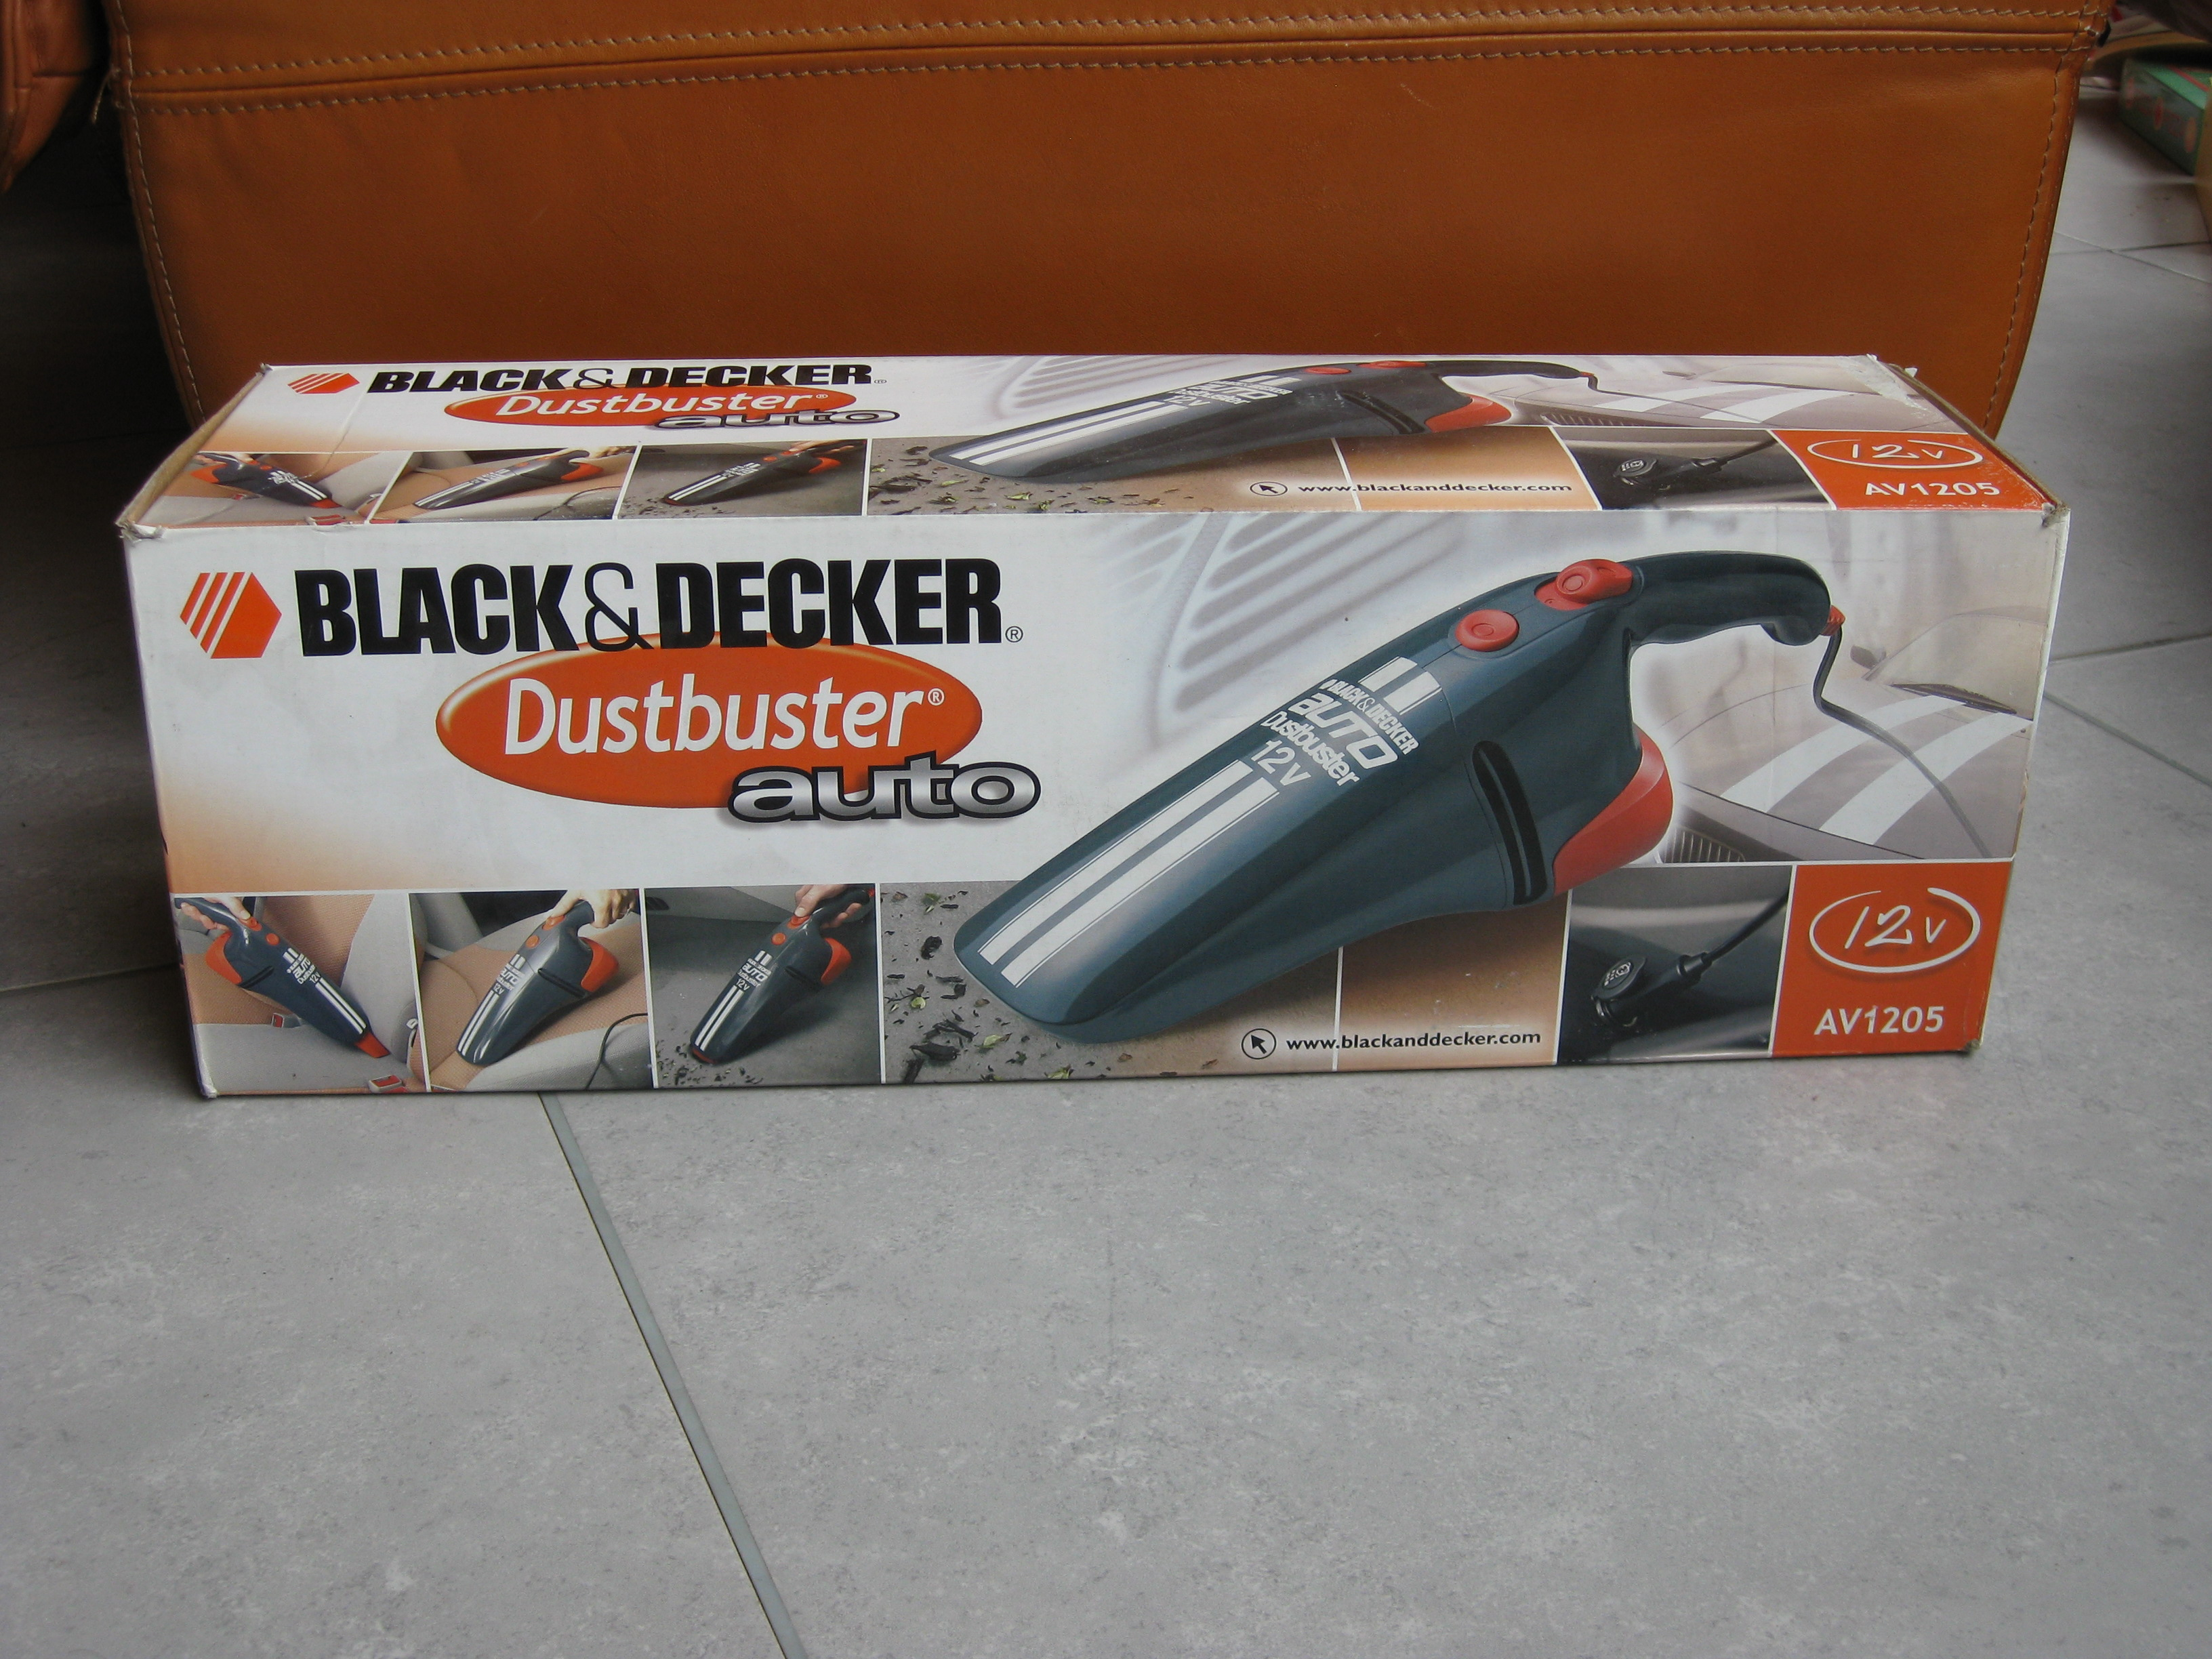 aspirateur a main black et decker dustbuster auto neuf port off. Black Bedroom Furniture Sets. Home Design Ideas